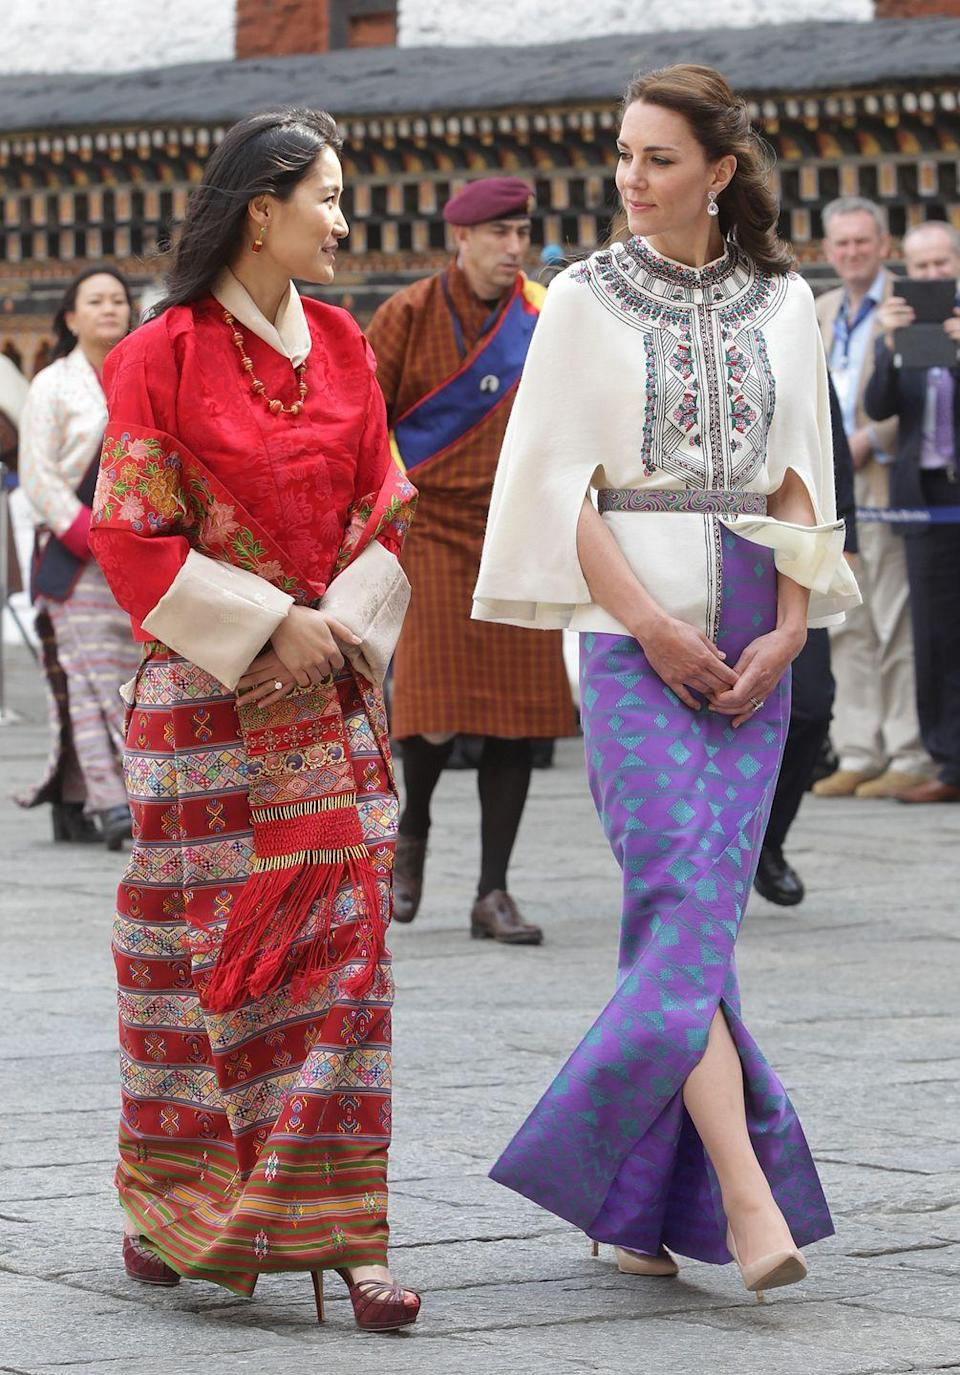 <p>The Queen (photographed here with the Duchess of Cambridge) often sports traditional clothing, known for their bright colors and intricate patterns. </p>